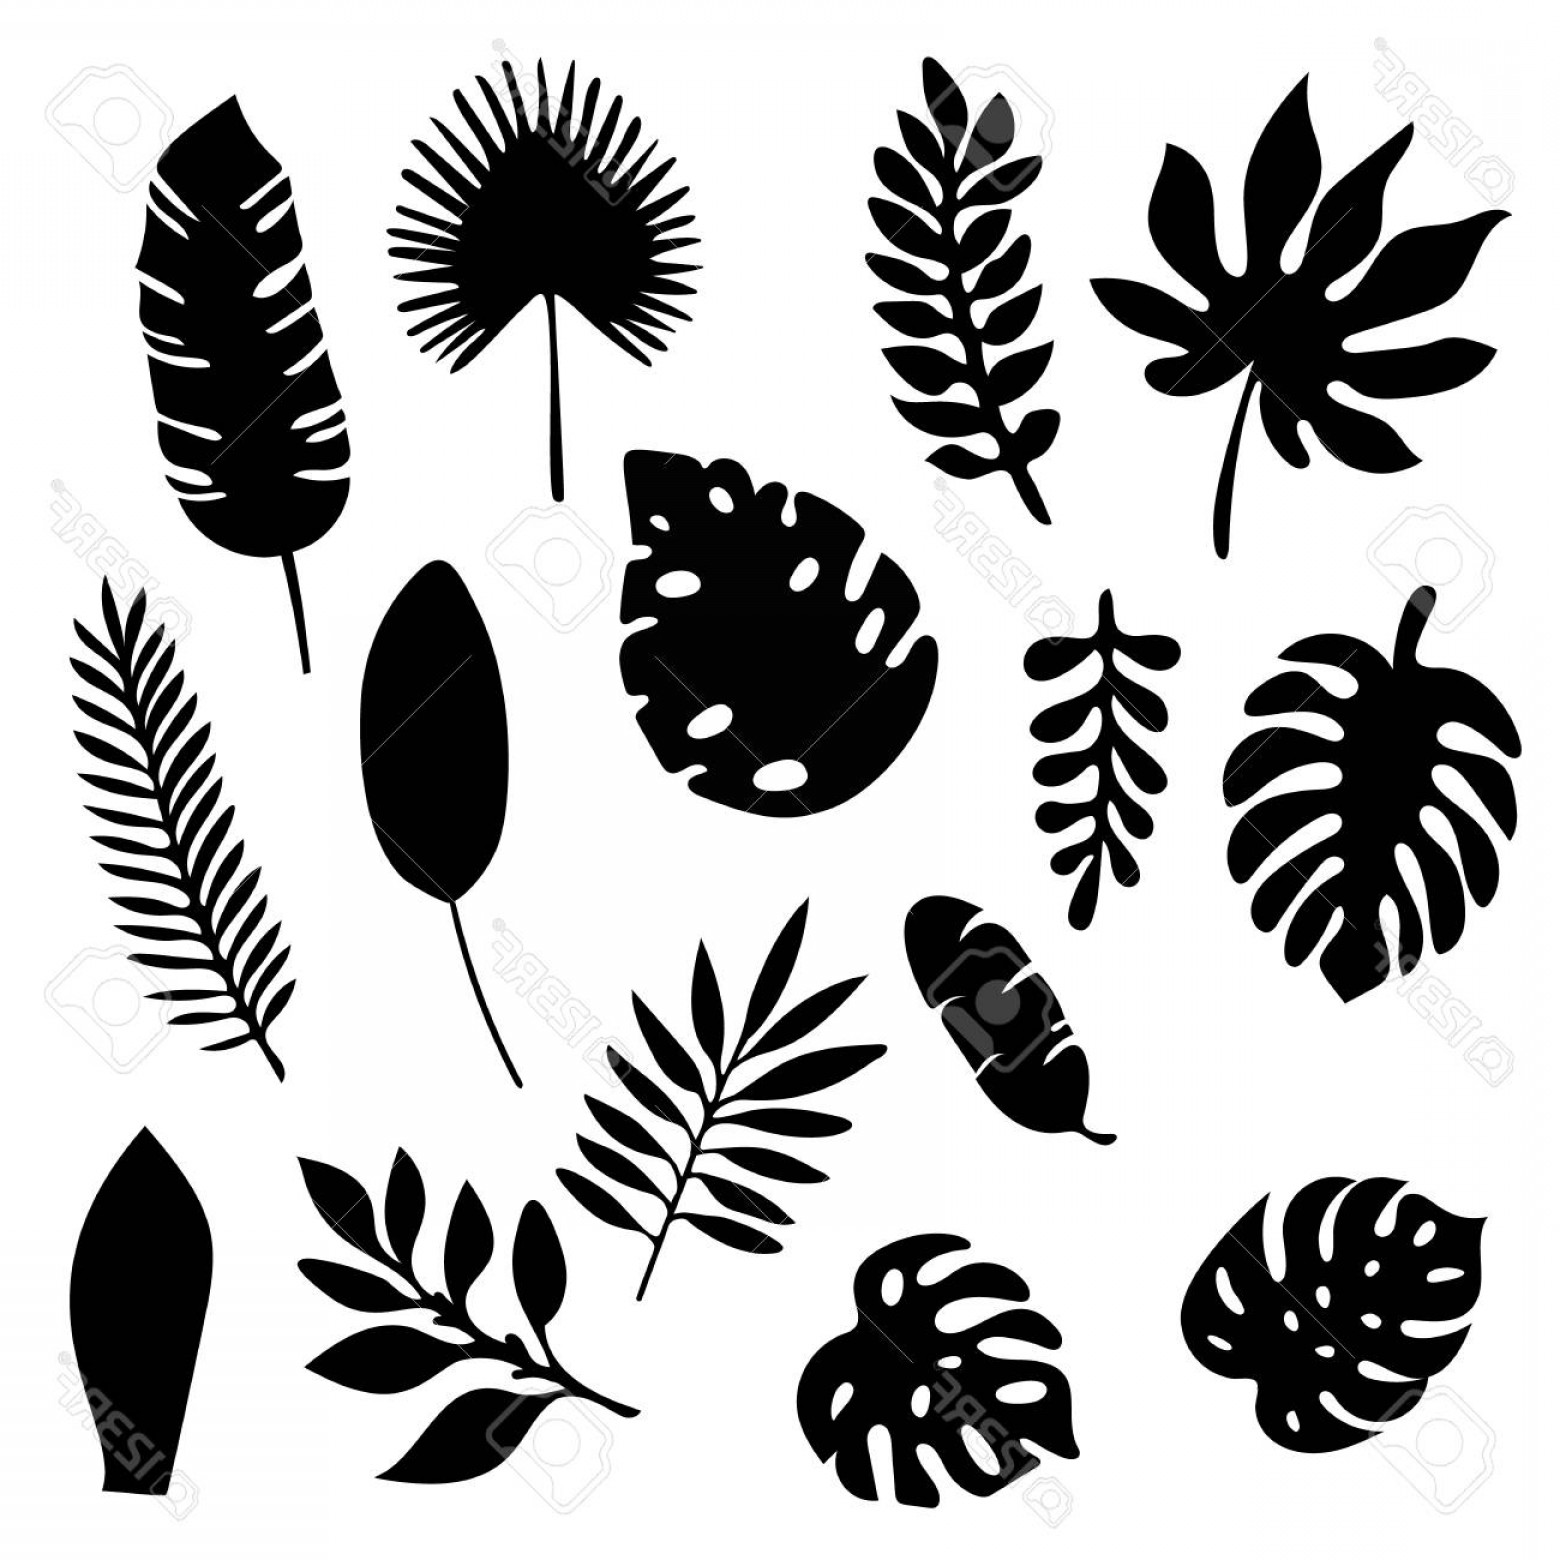 Fern silhouette clipart clip transparent library Vector Leaf Silhouette | SOIDERGI clip transparent library